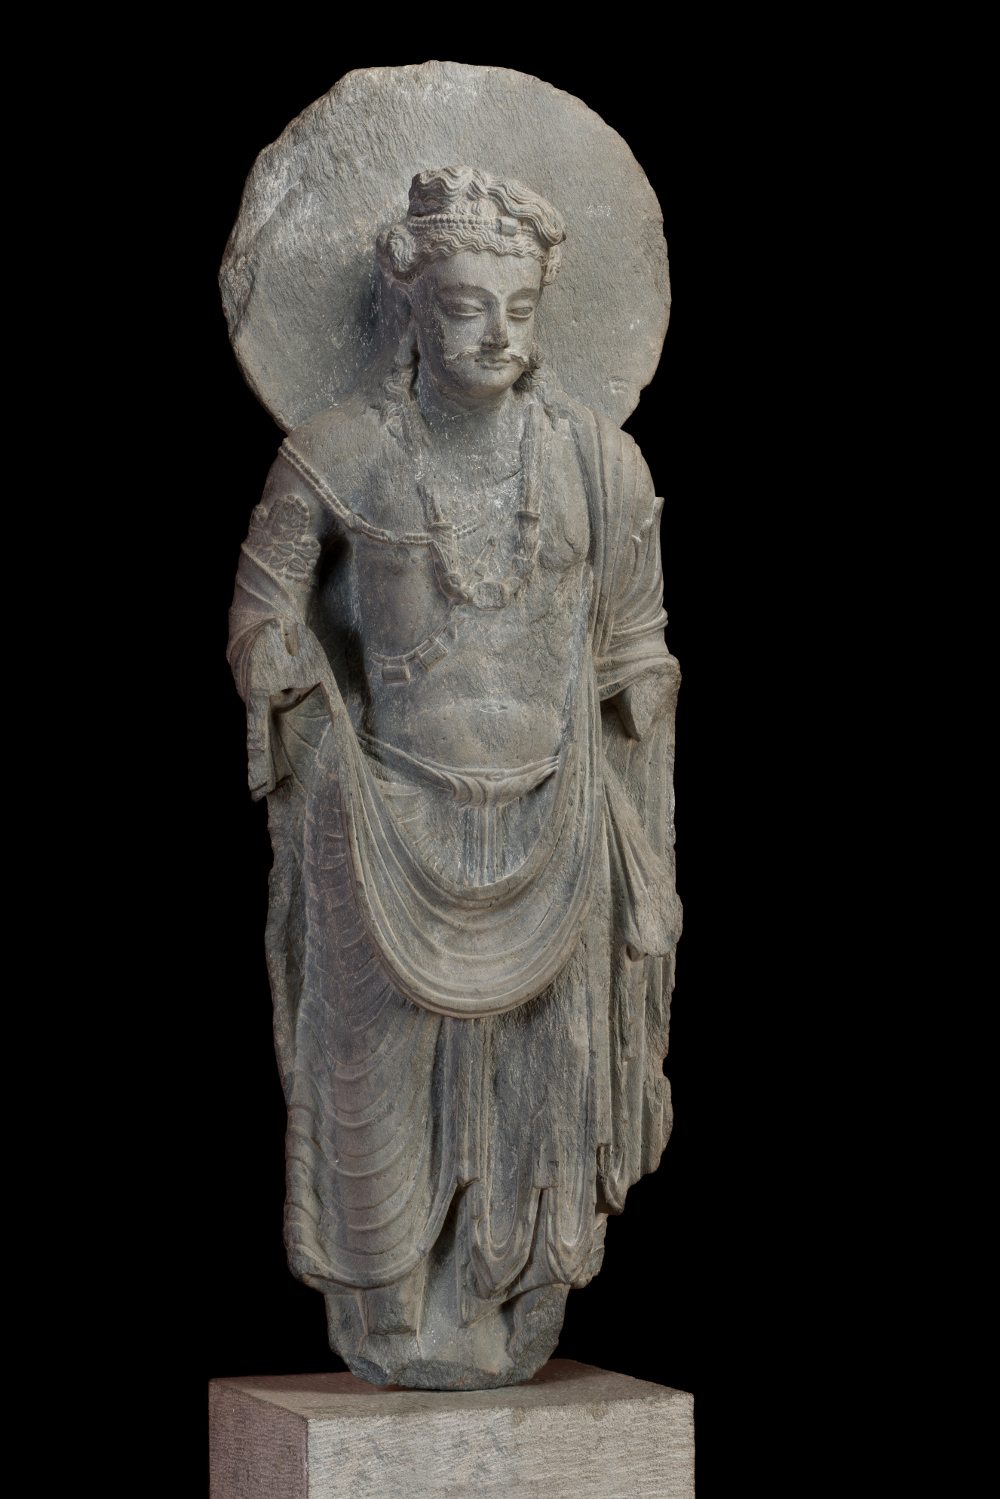 Bodhisattva Maitreya  - Grey schistAD 120–200Gandhara, Pakistan or AfghanistanGovernment Museum and Art Gallery, Chandigarh, IndiaThis sculpture of the Bodhisattva Maitreya – the Buddha to be who will succeed Gautama – is an amalgamation of many cultures. The robes are drawn from Greek art traditions, the shape of the moustache and eyes hint at Central Asian ideals of beauty, while the Buddhist iconography originates in India. Strength is communicated by his musculature, strong jaw and noble expression; spirituality through the meditative eyes and by the kamandalu, the water pot carried by wandering ascetics in India.